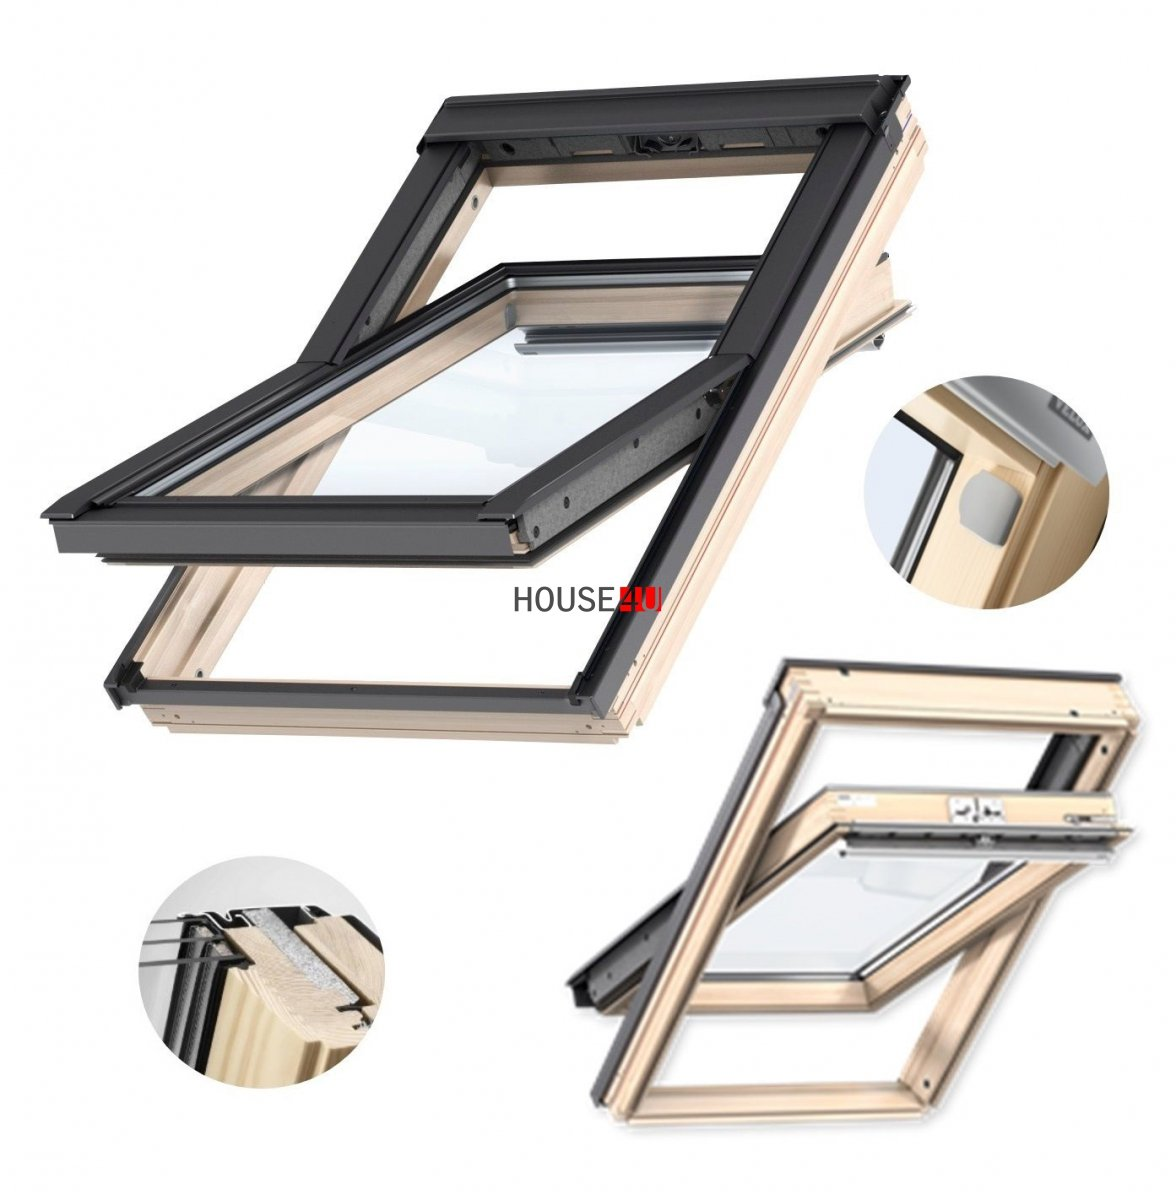 velux dachfenster gll 1061 3 fach verglasung uw 1 1. Black Bedroom Furniture Sets. Home Design Ideas